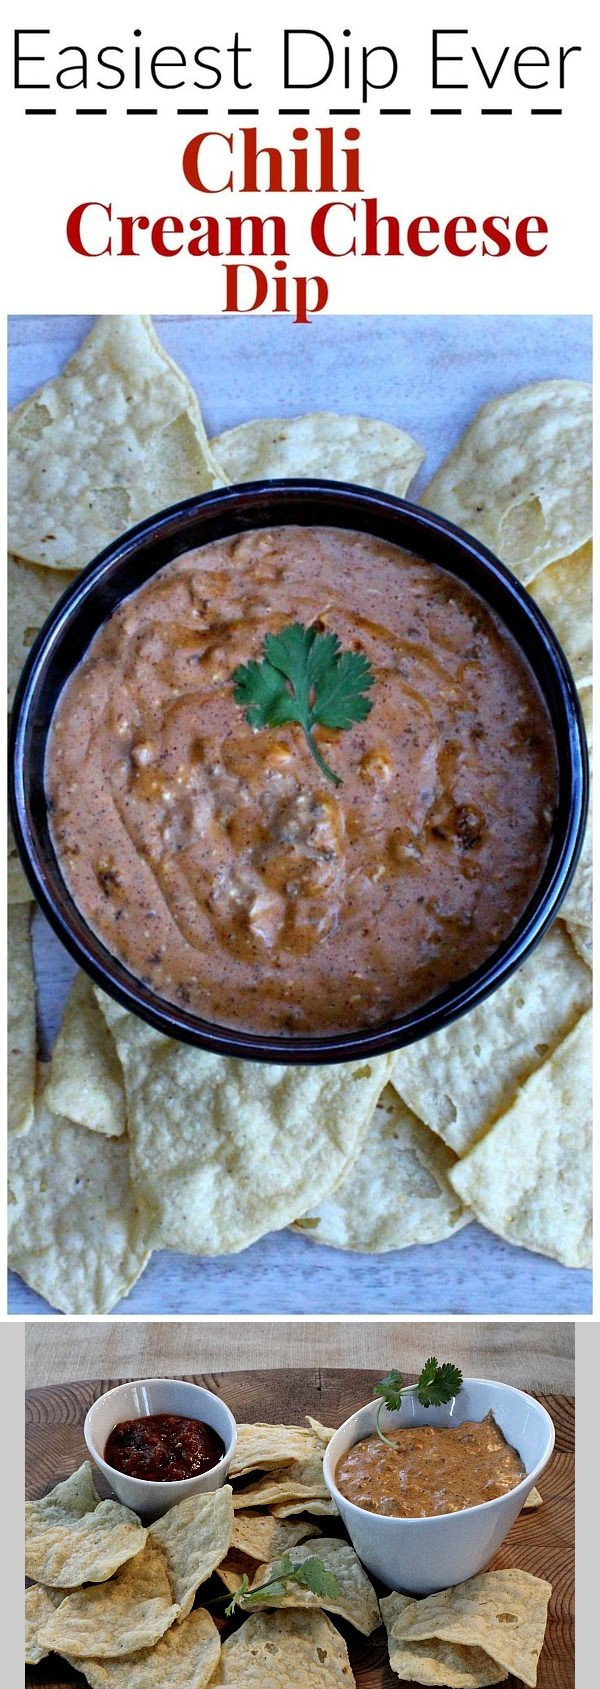 Easiest Dip Appetizer Ever, Cream Cheese and Chili